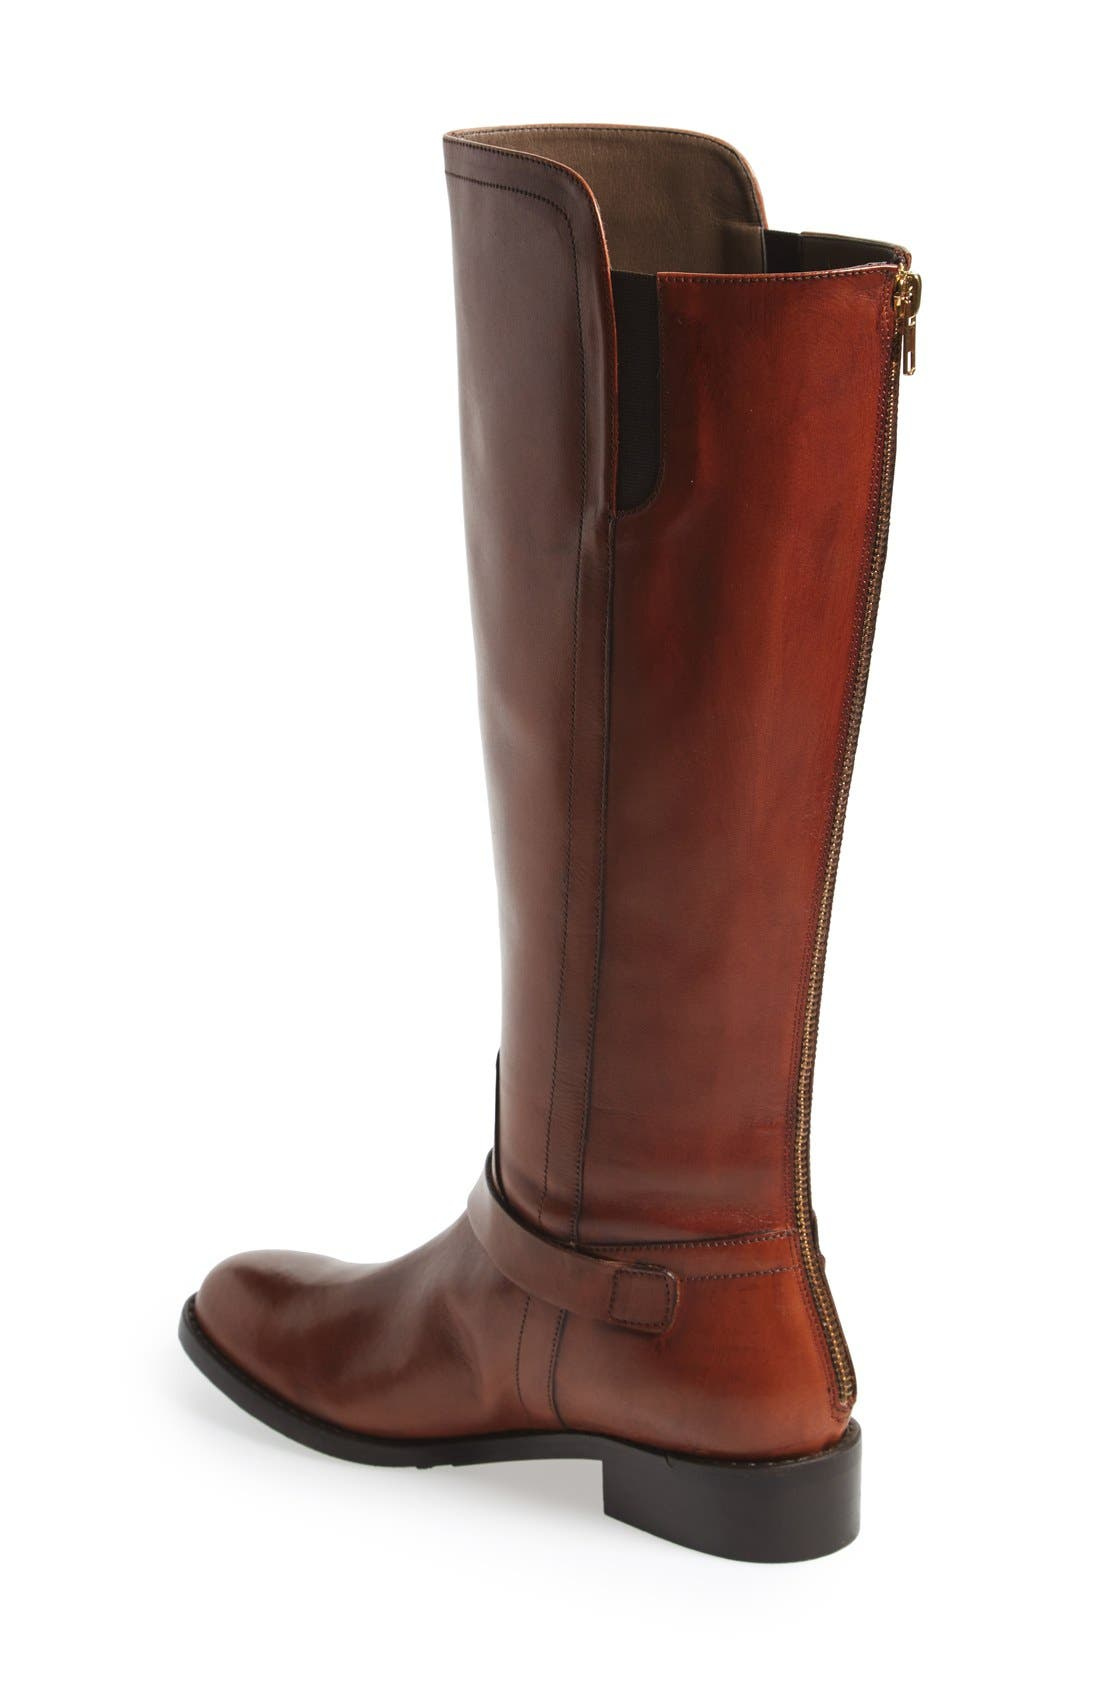 Esaitaly Tall Riding Boot,                             Alternate thumbnail 2, color,                             215